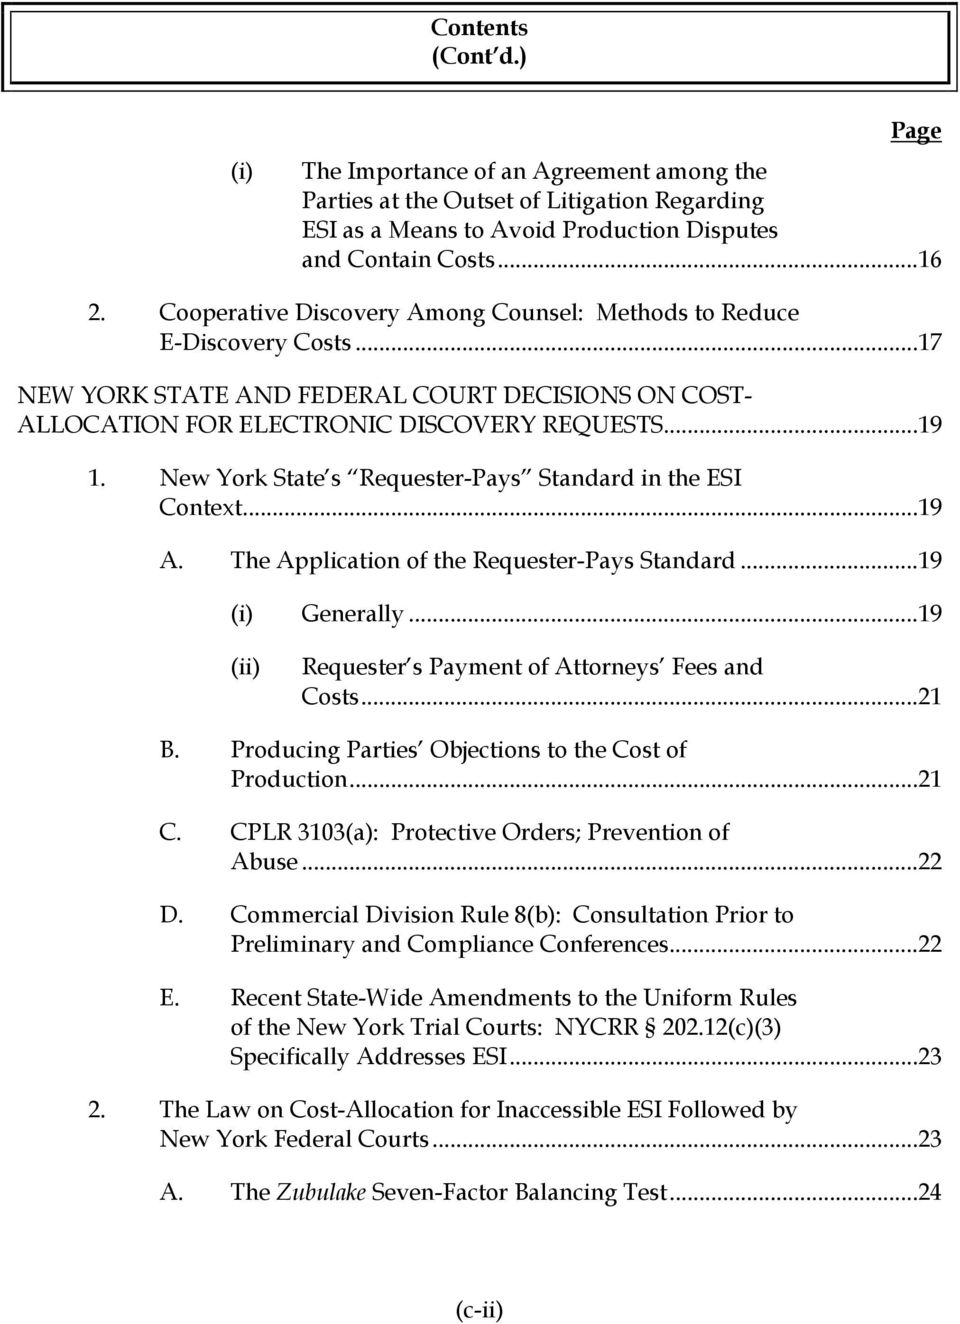 New York State s Requester-Pays Standard in the ESI Context...19 A. The Application of the Requester-Pays Standard...19 (i) Generally...19 (ii) Requester s Payment of Attorneys Fees and Costs...21 B.